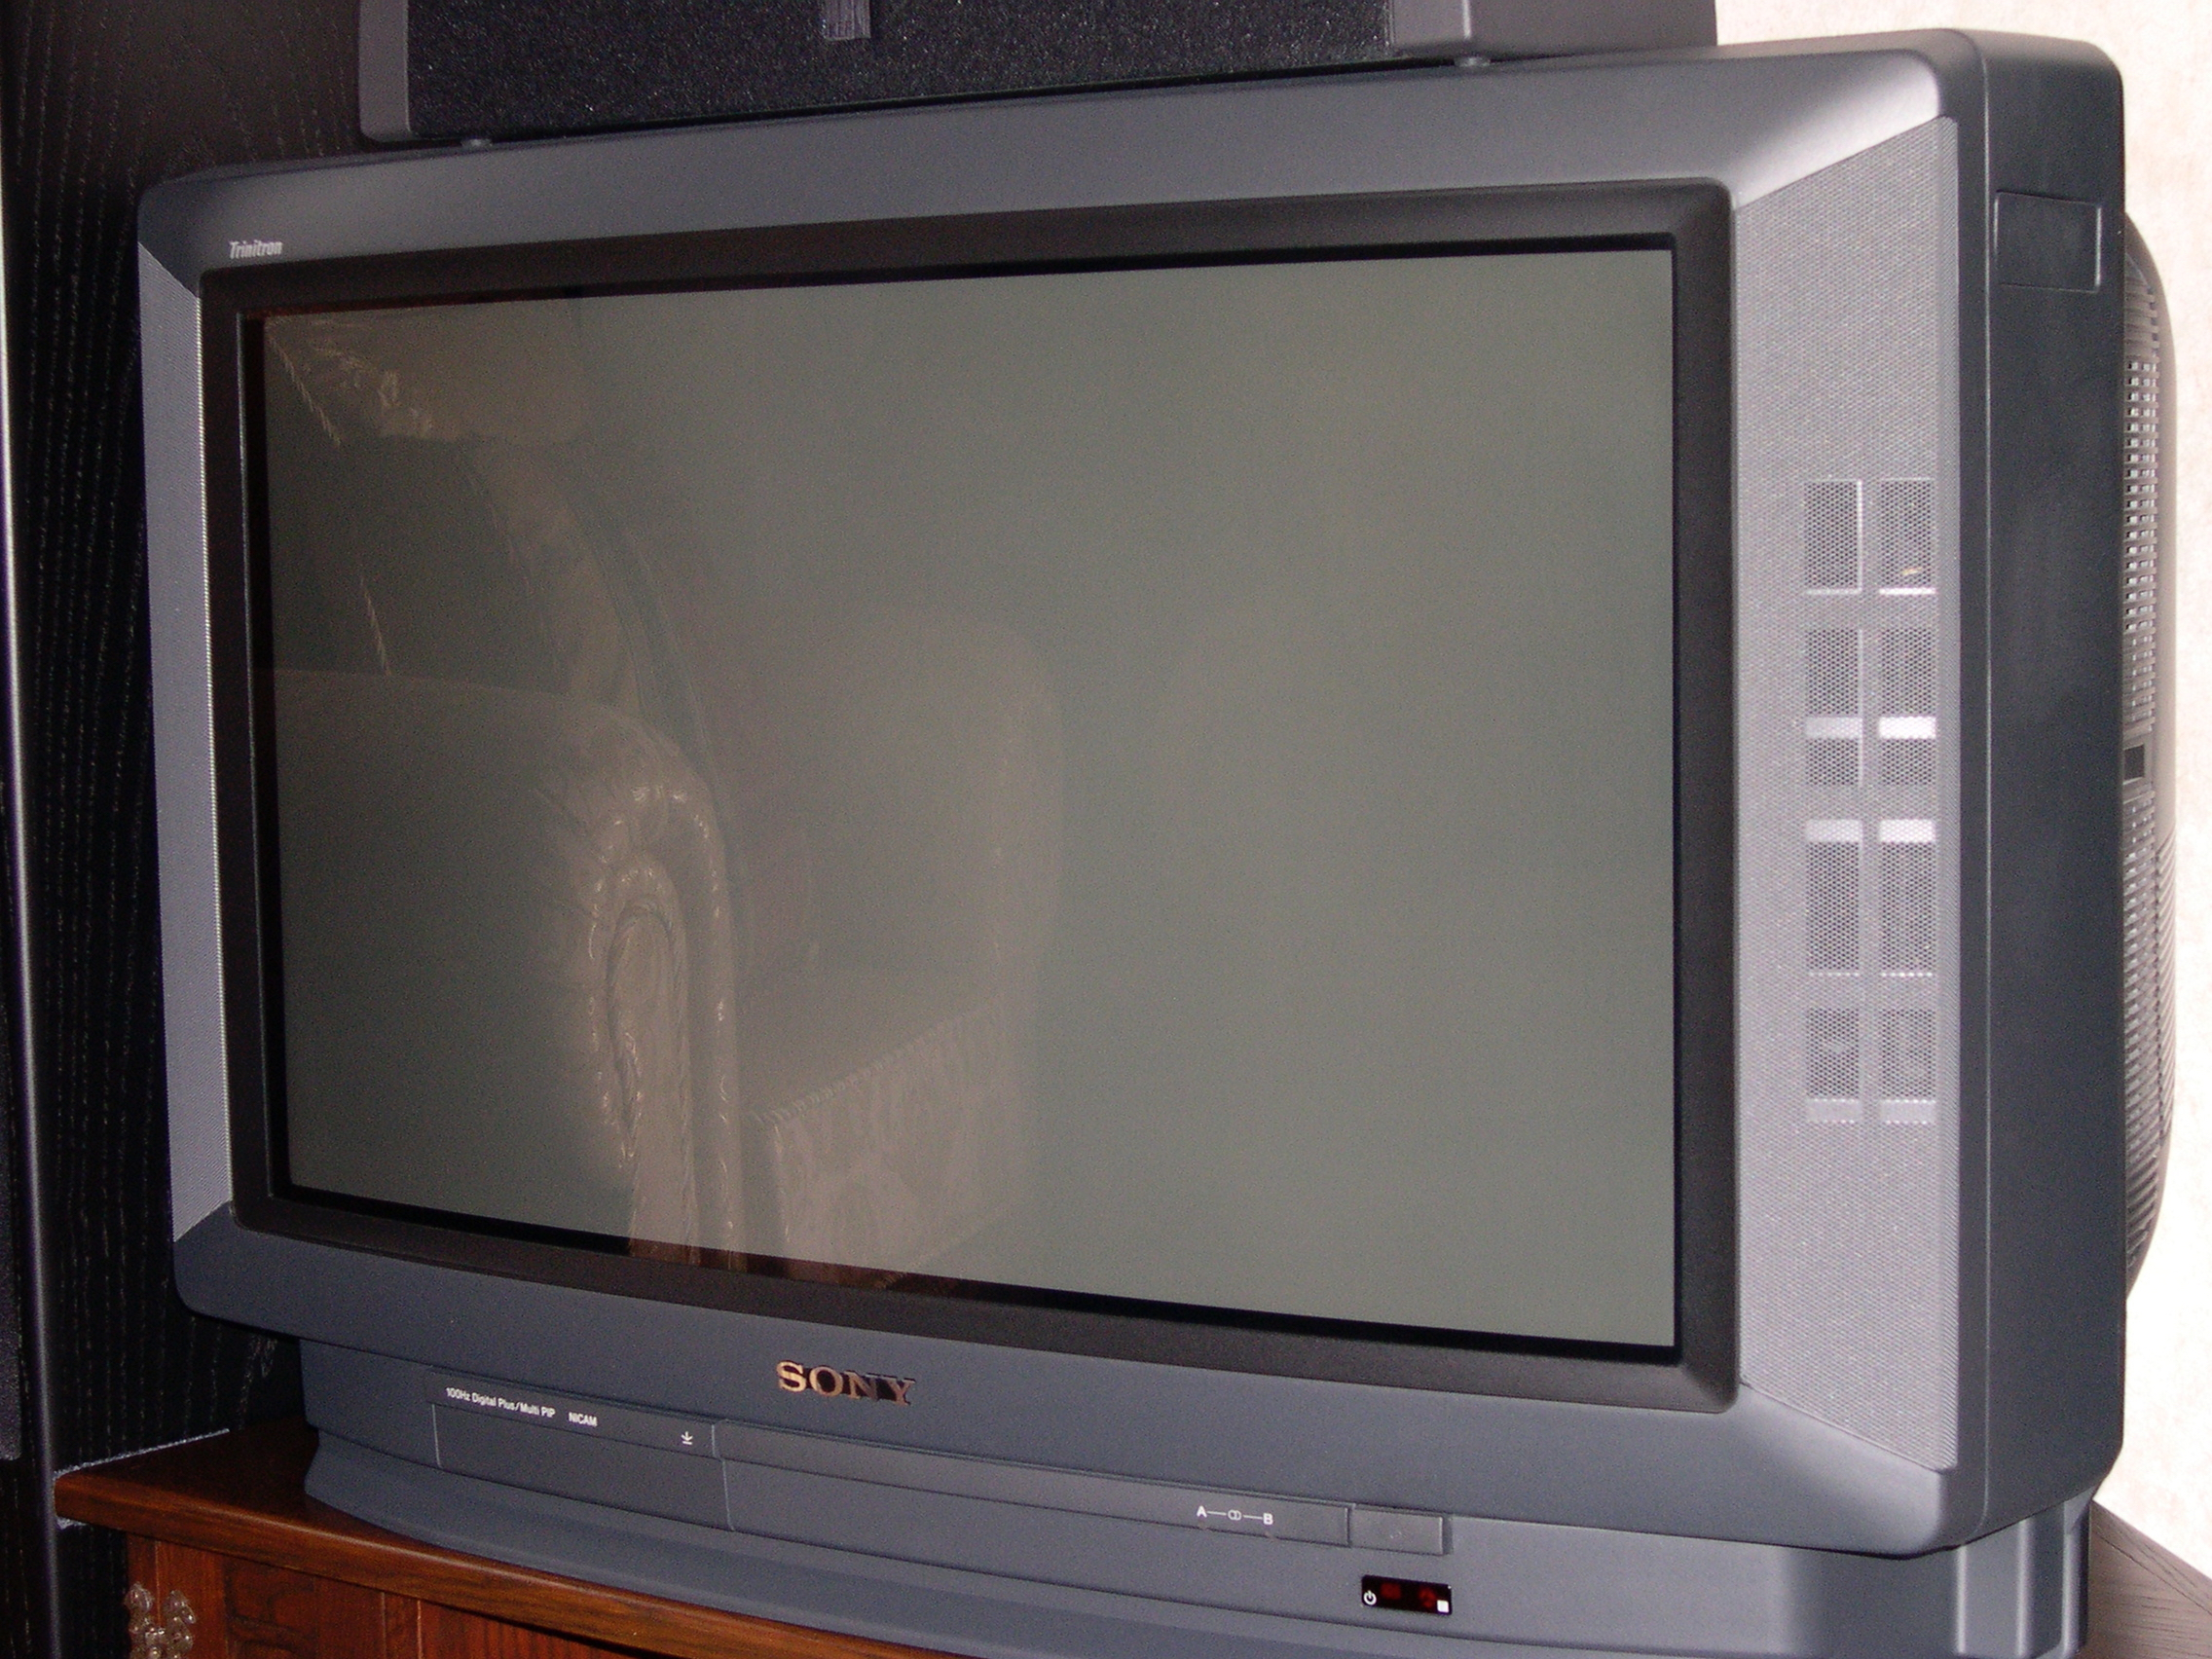 A large, grey Sony Trinitron CRT television sat on a dark wood TV corner stand unit